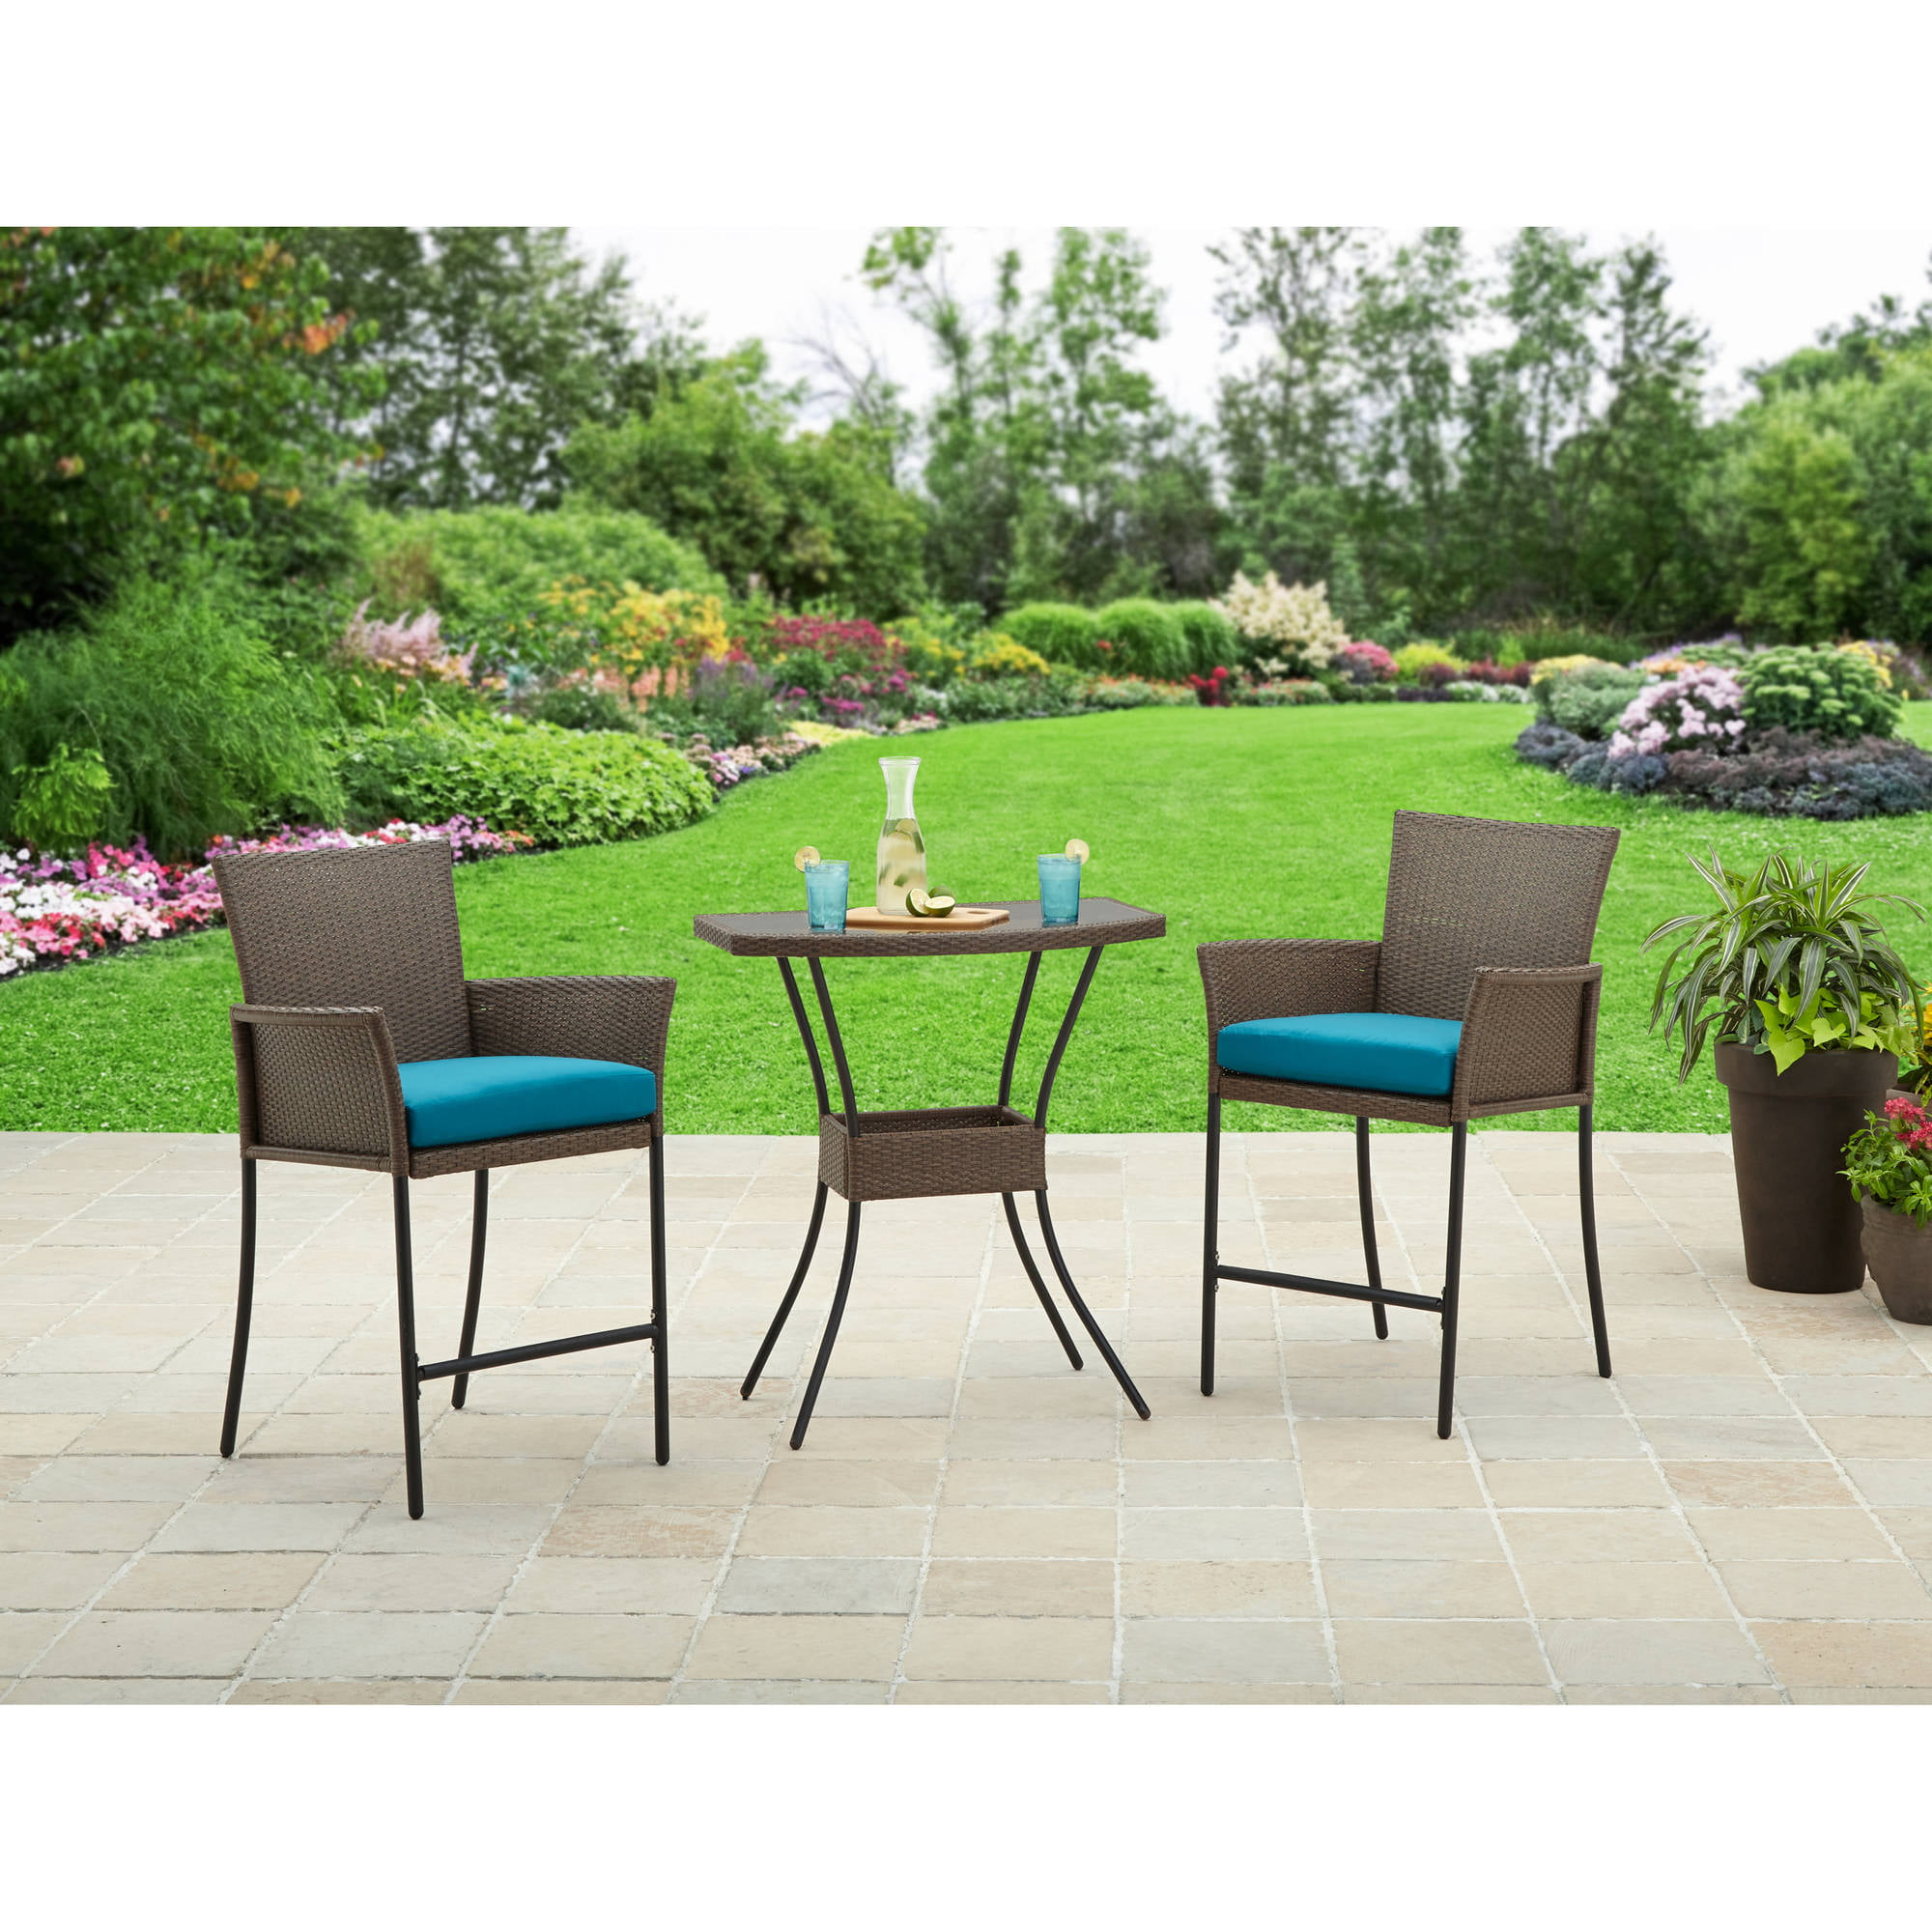 Charming Better Homes And Gardens Fairfield Bay 3 Piece Balcony Bistro Set    Walmart.com